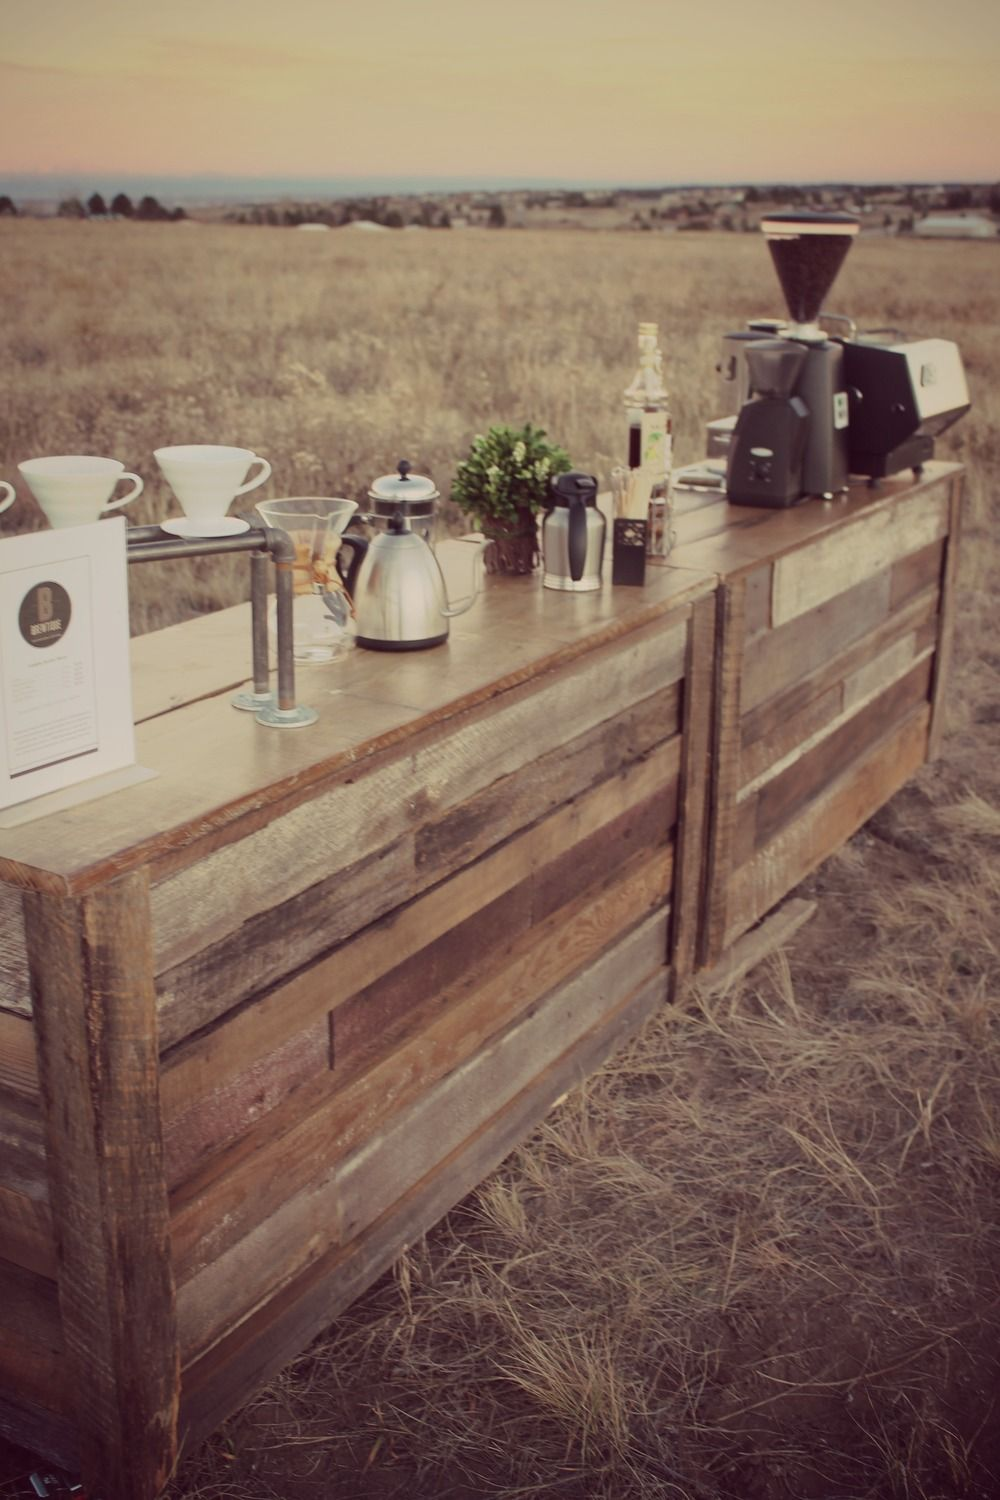 More Pallet Ideas At Outdoor Coffee Bar Setup Made From Upcycled Wooden  Pallets.